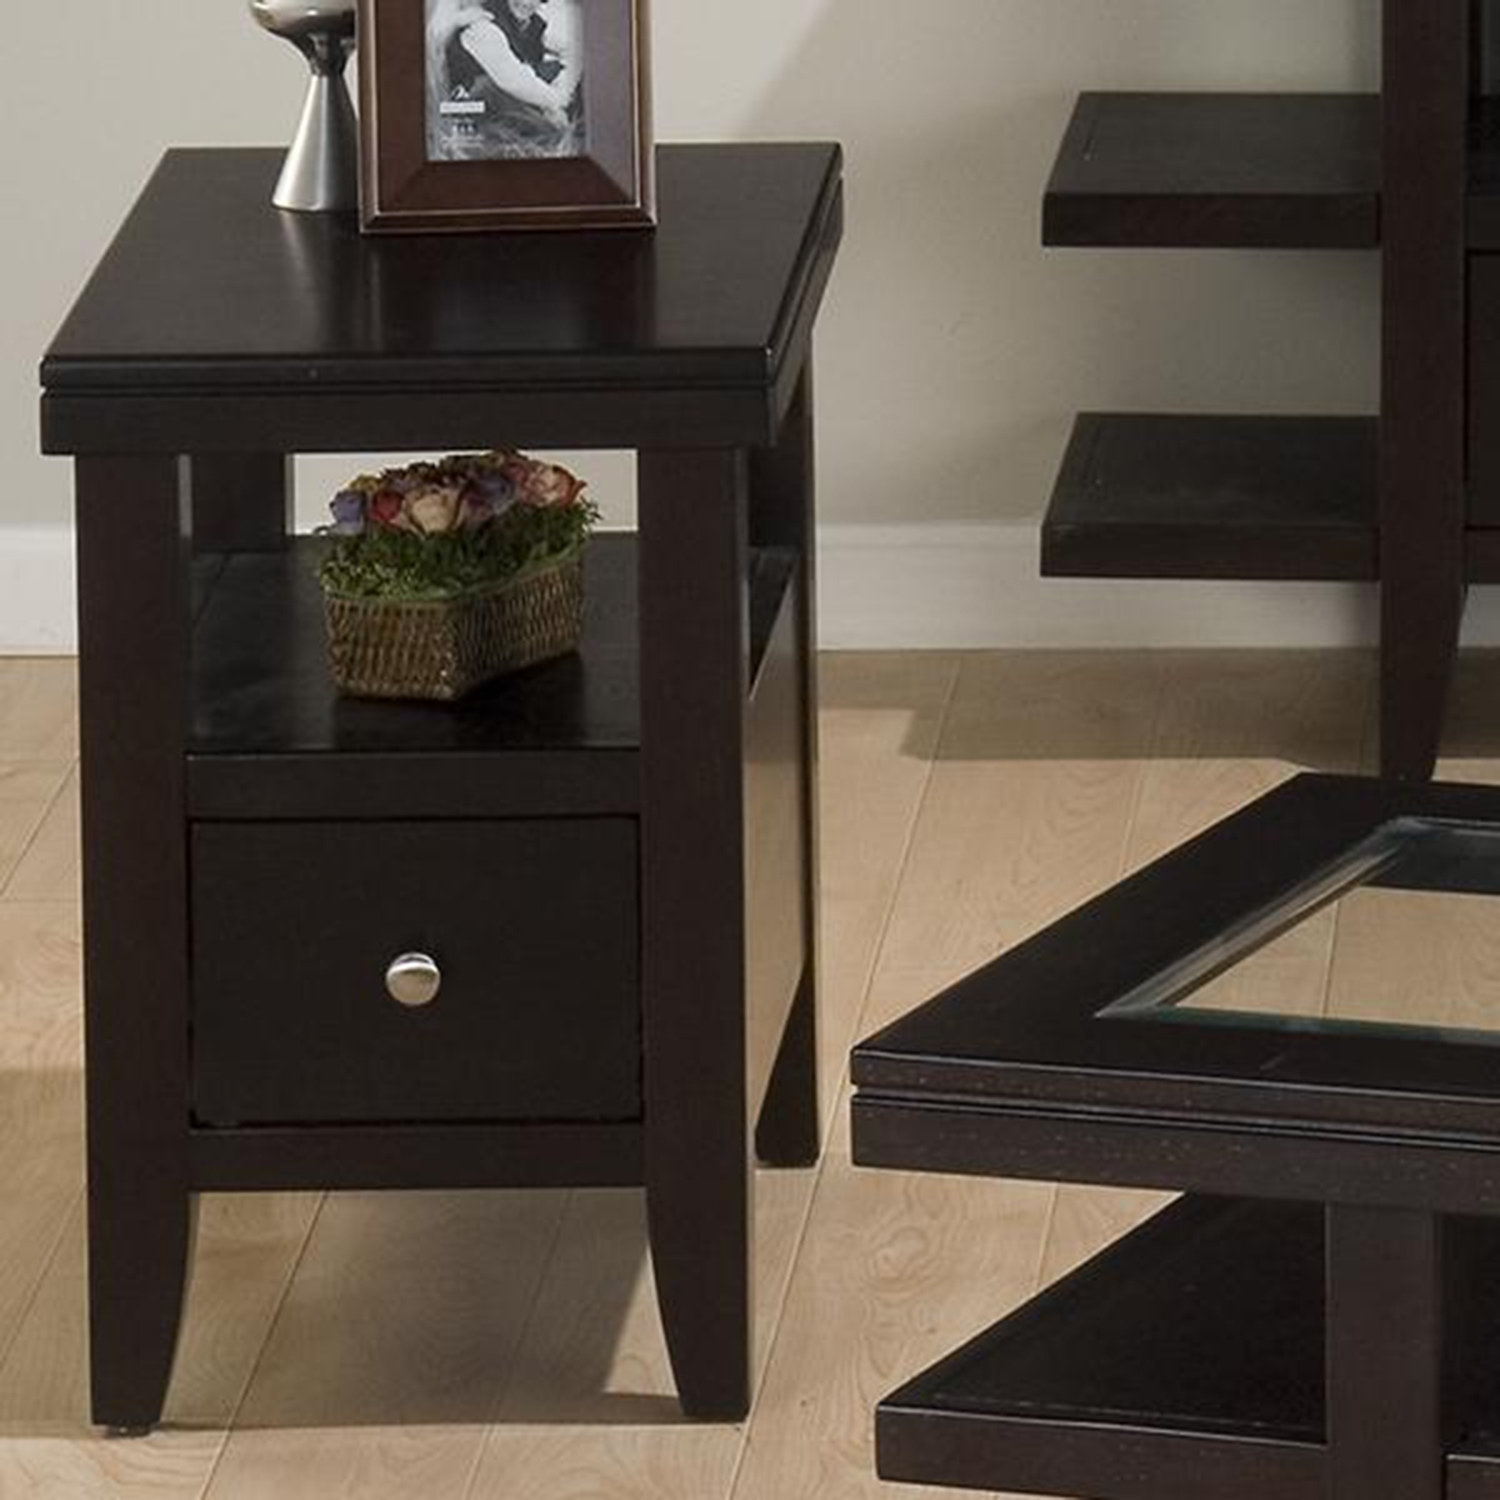 Marlon Rectangle Chairside Table - Wenge - JOFR-091-7